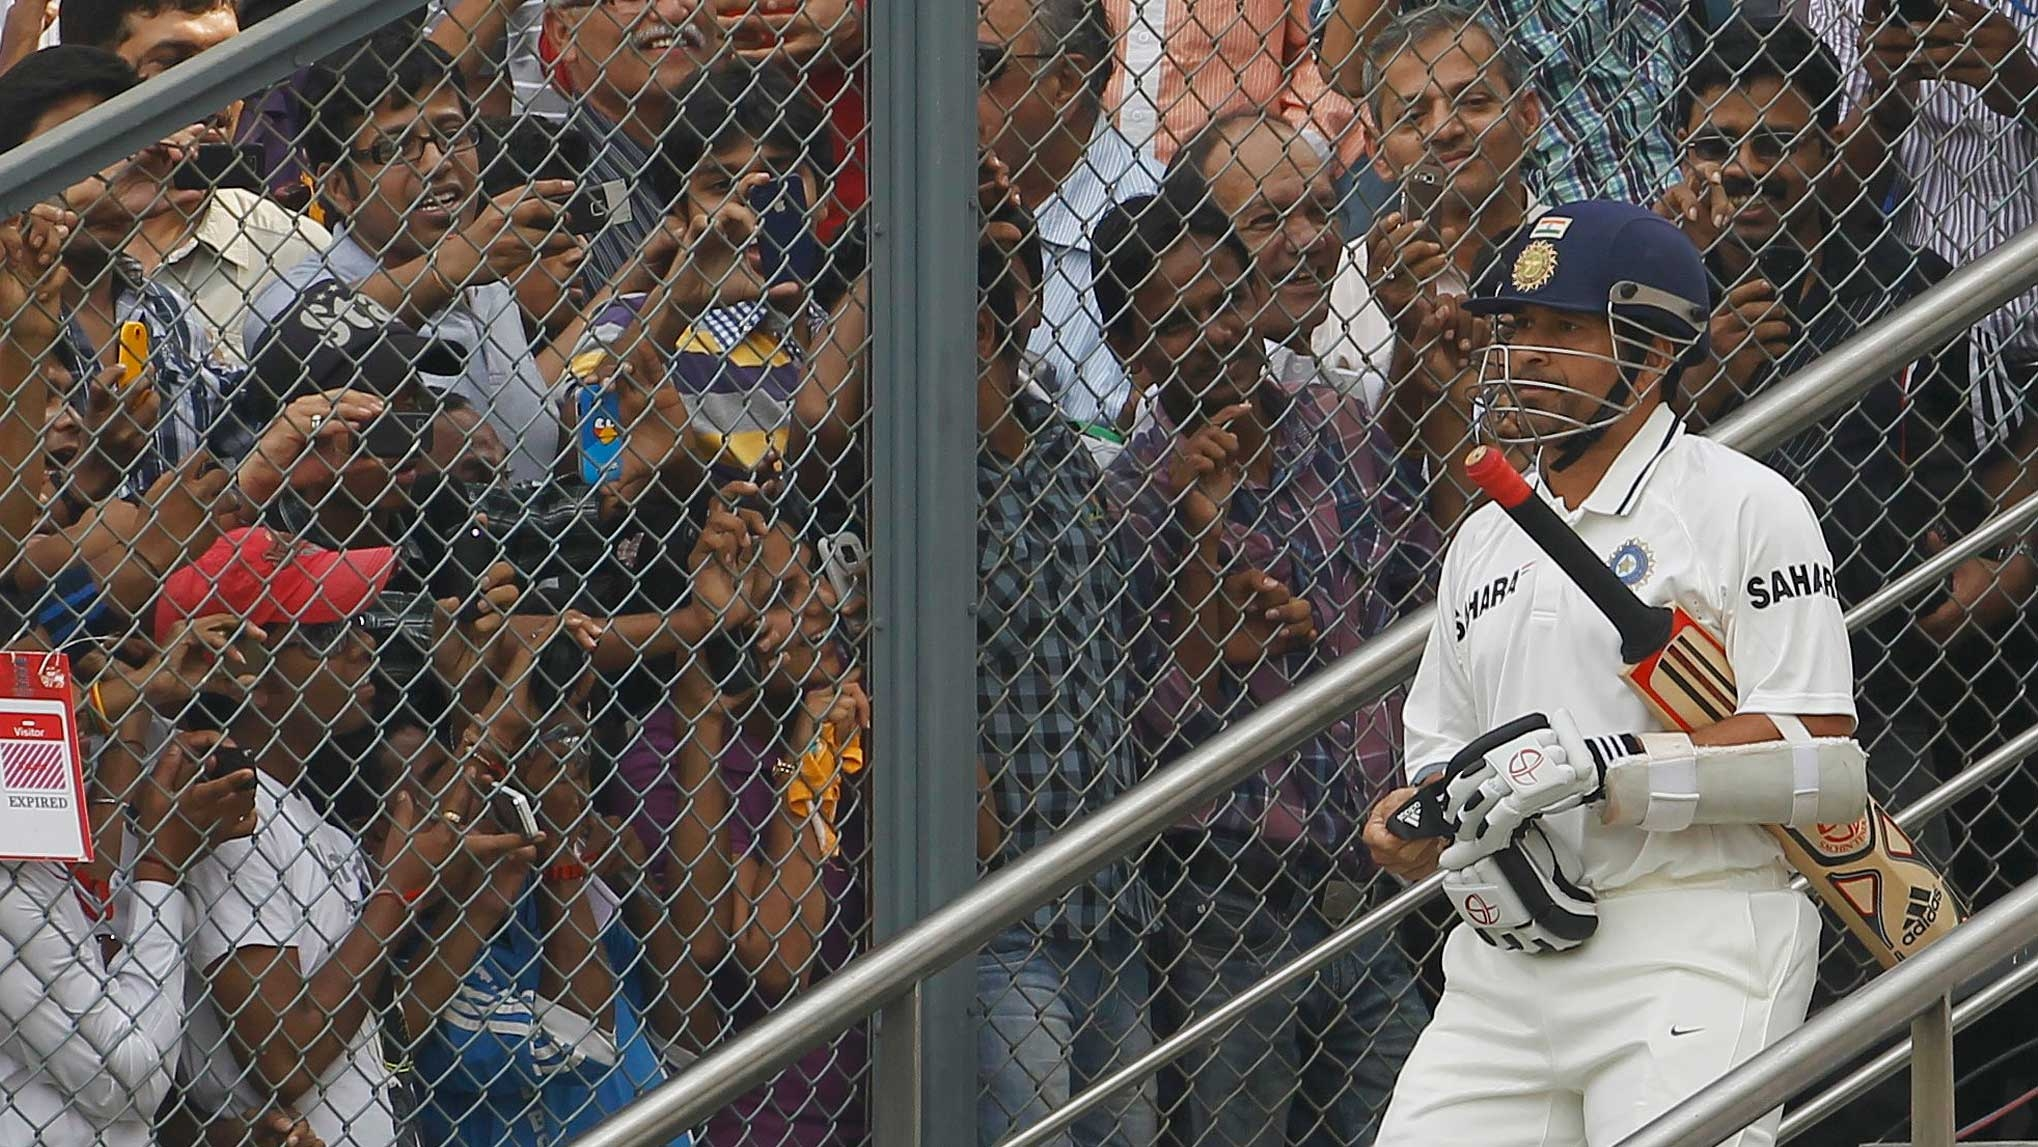 How I Saw Sachin's Humility While Dealing With A Billion Dreams